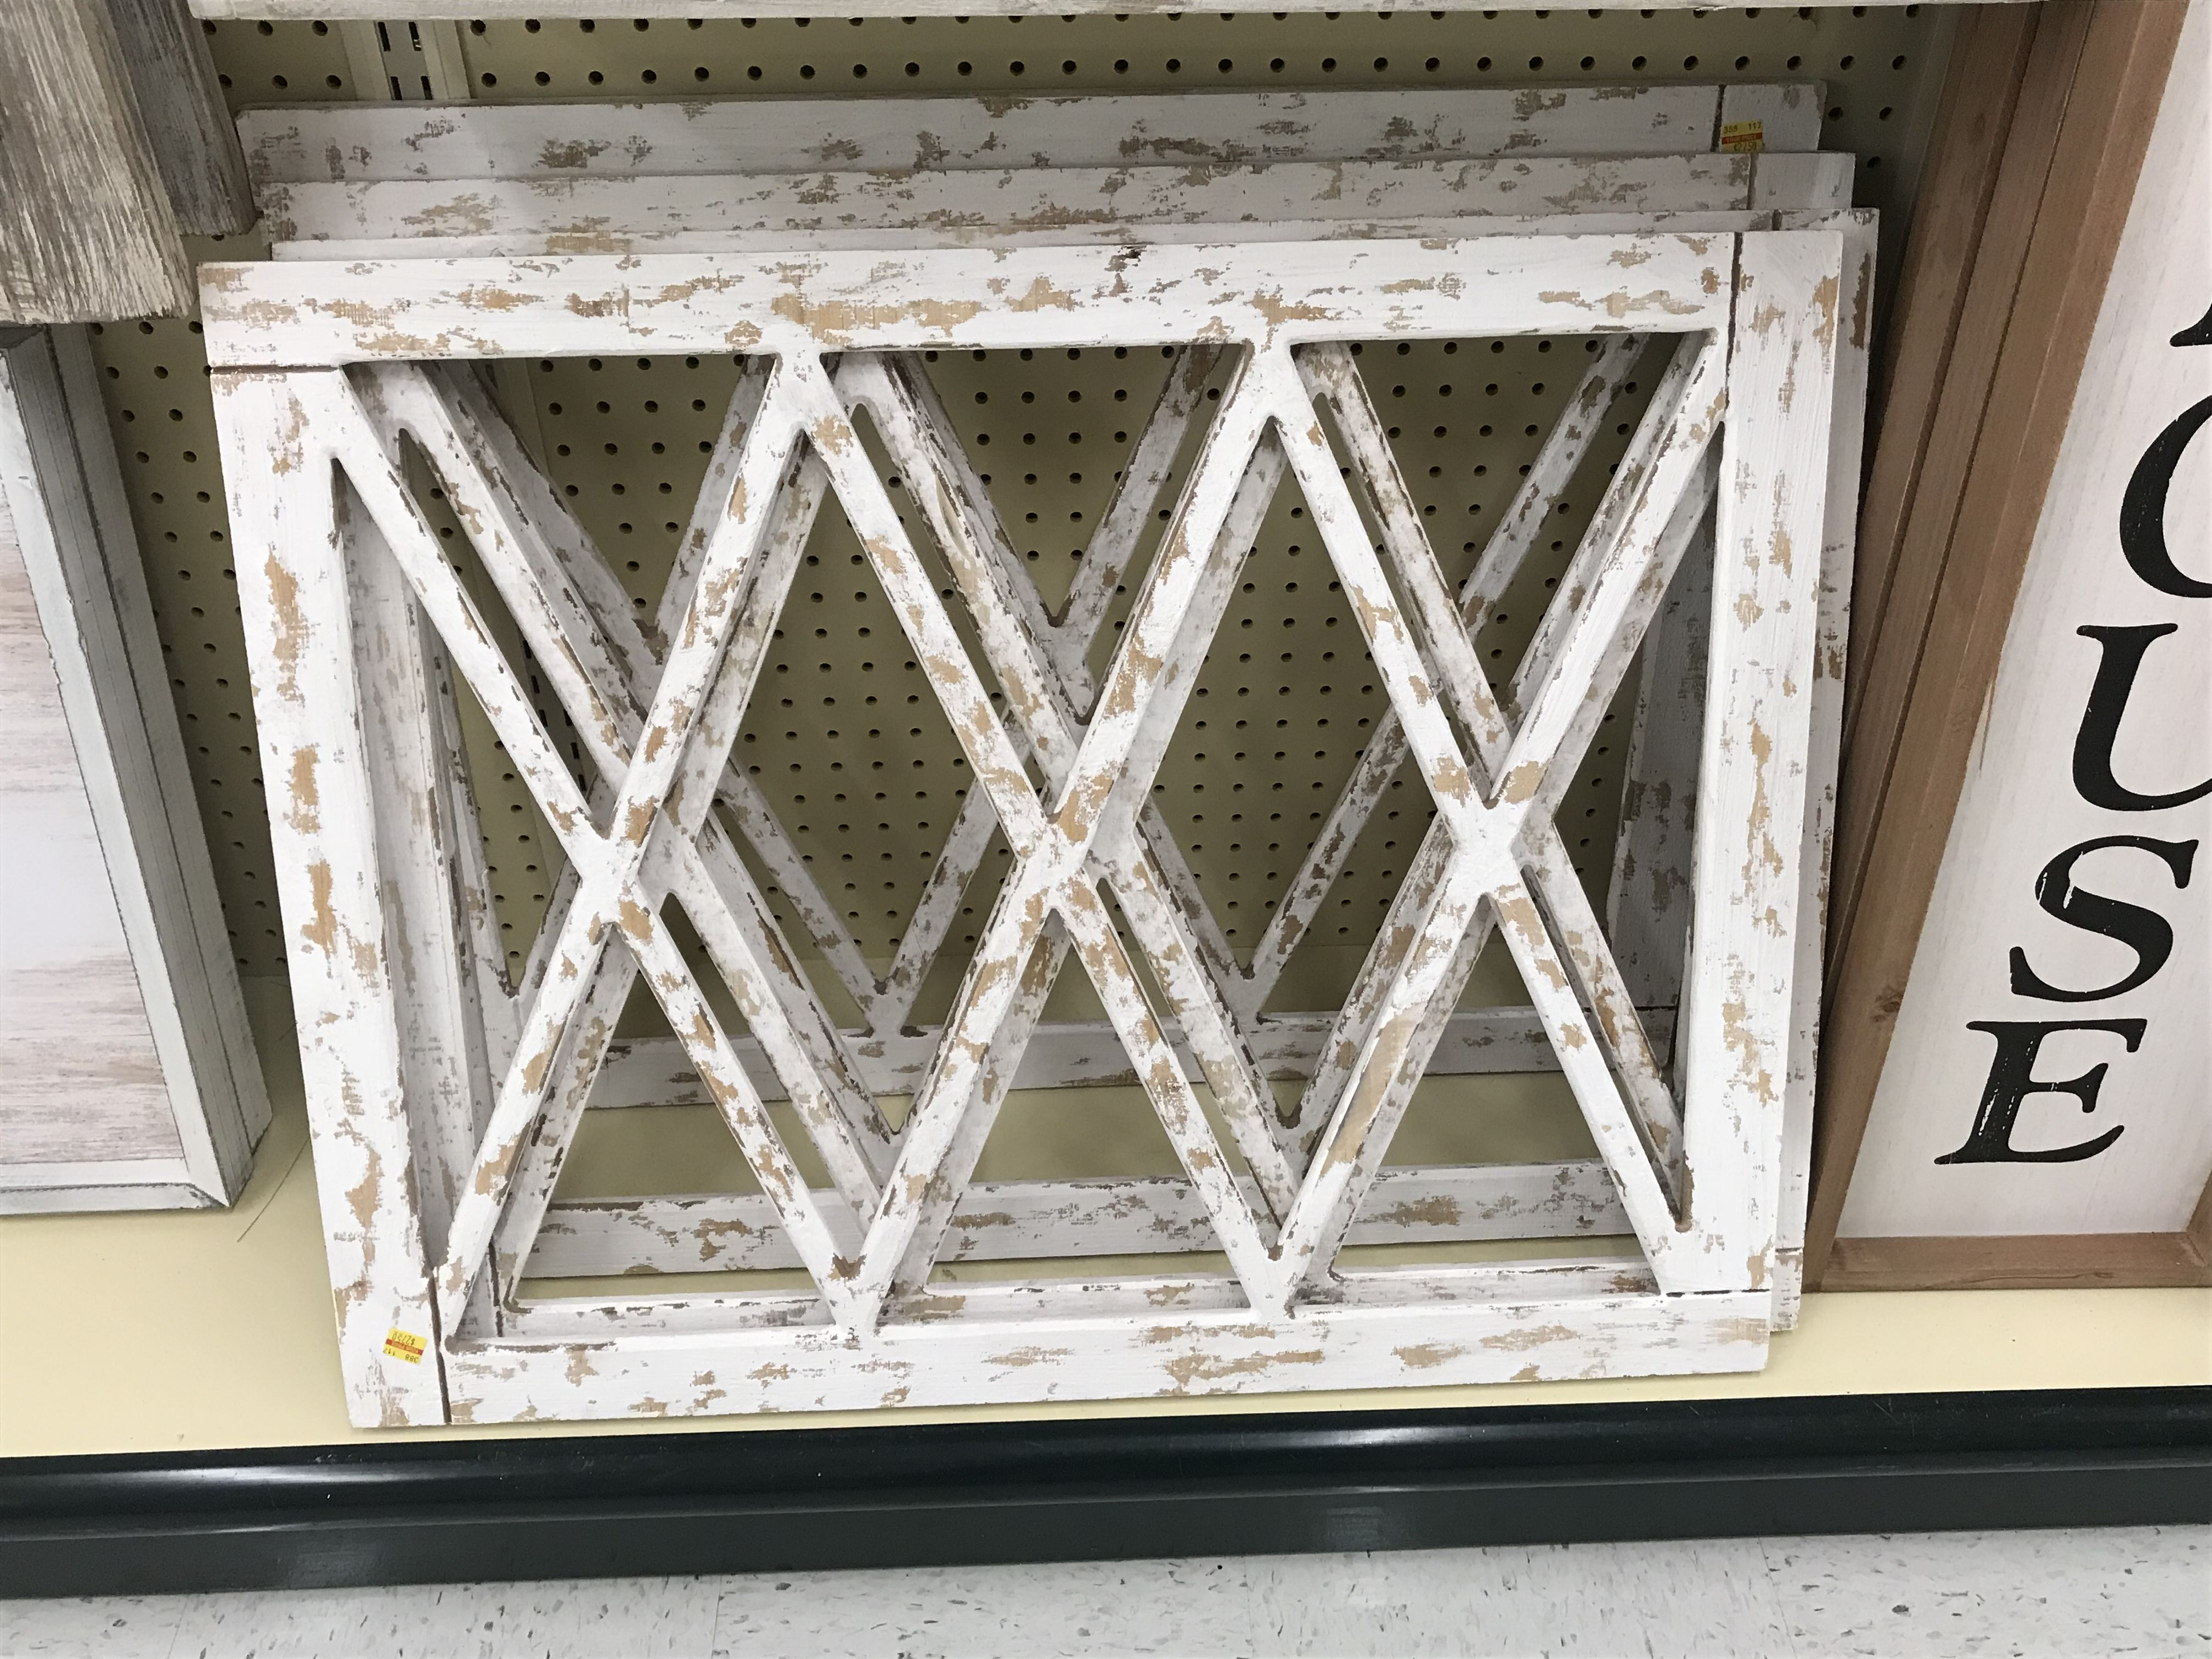 Wooden window frame at hobby lobby amys wish list 2017 wooden window frame at hobby lobby jeuxipadfo Image collections